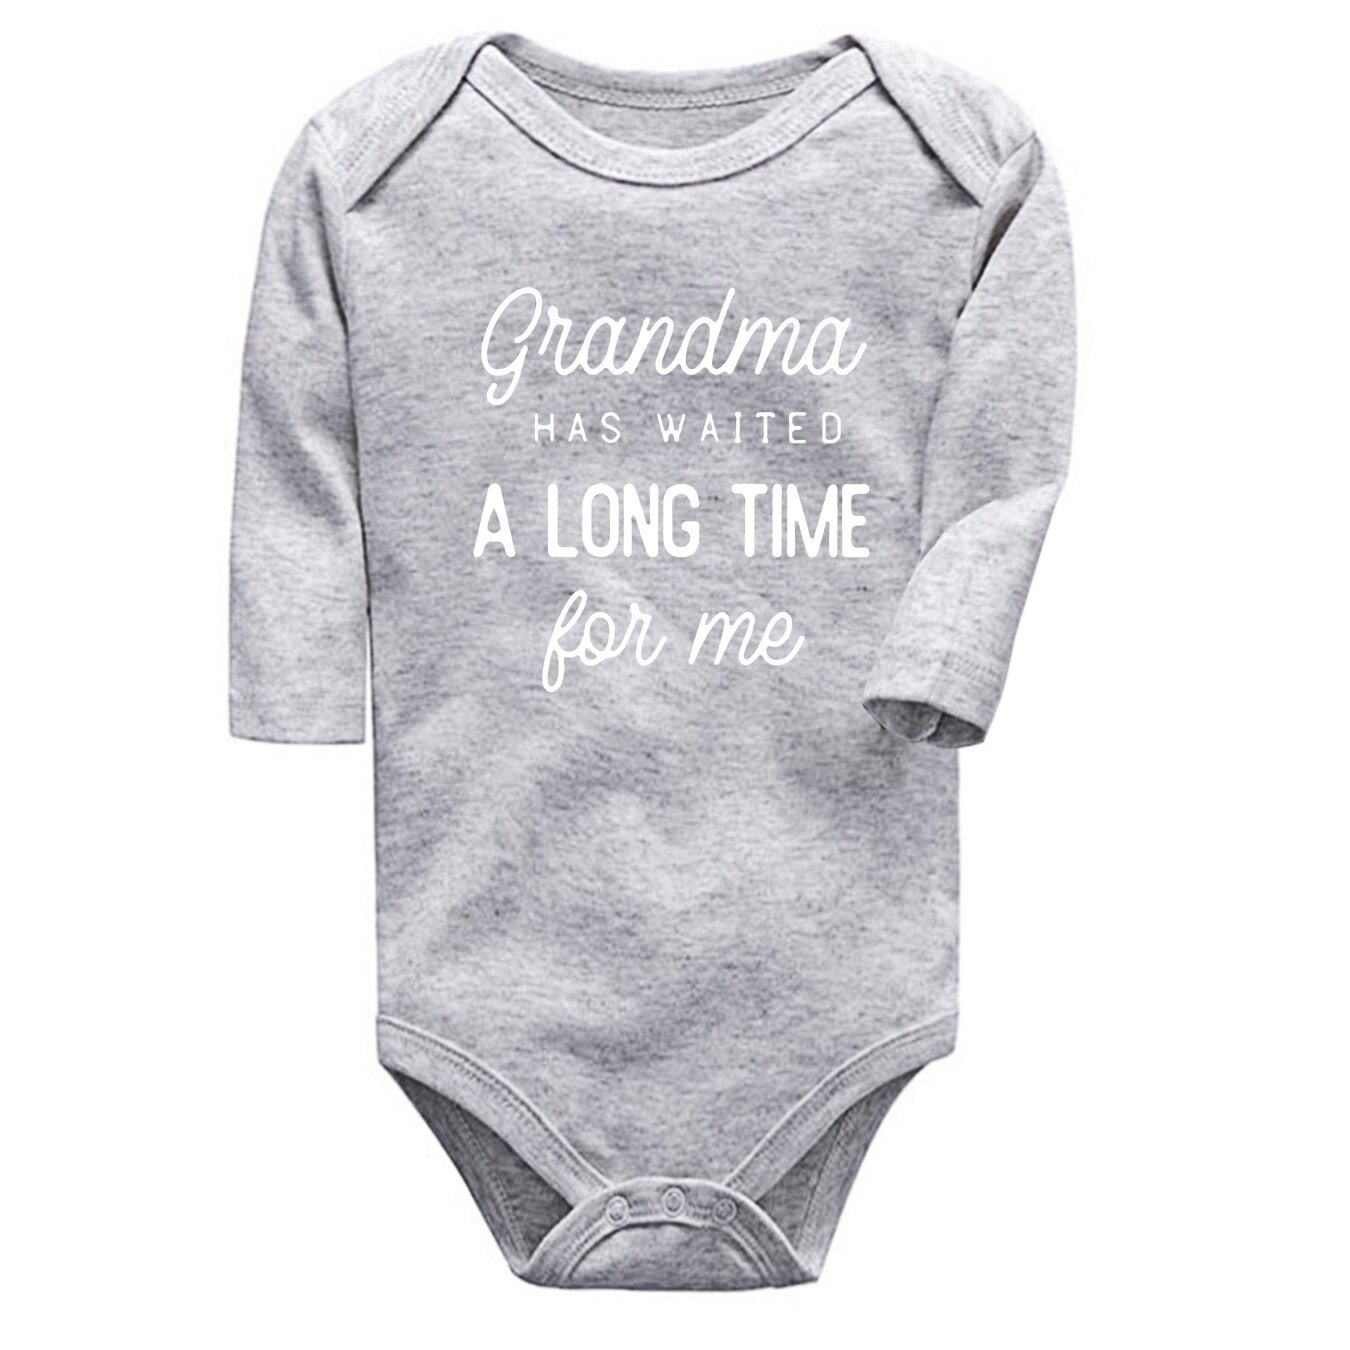 ong-time-letter-printing-new-born-baby-c_description-8